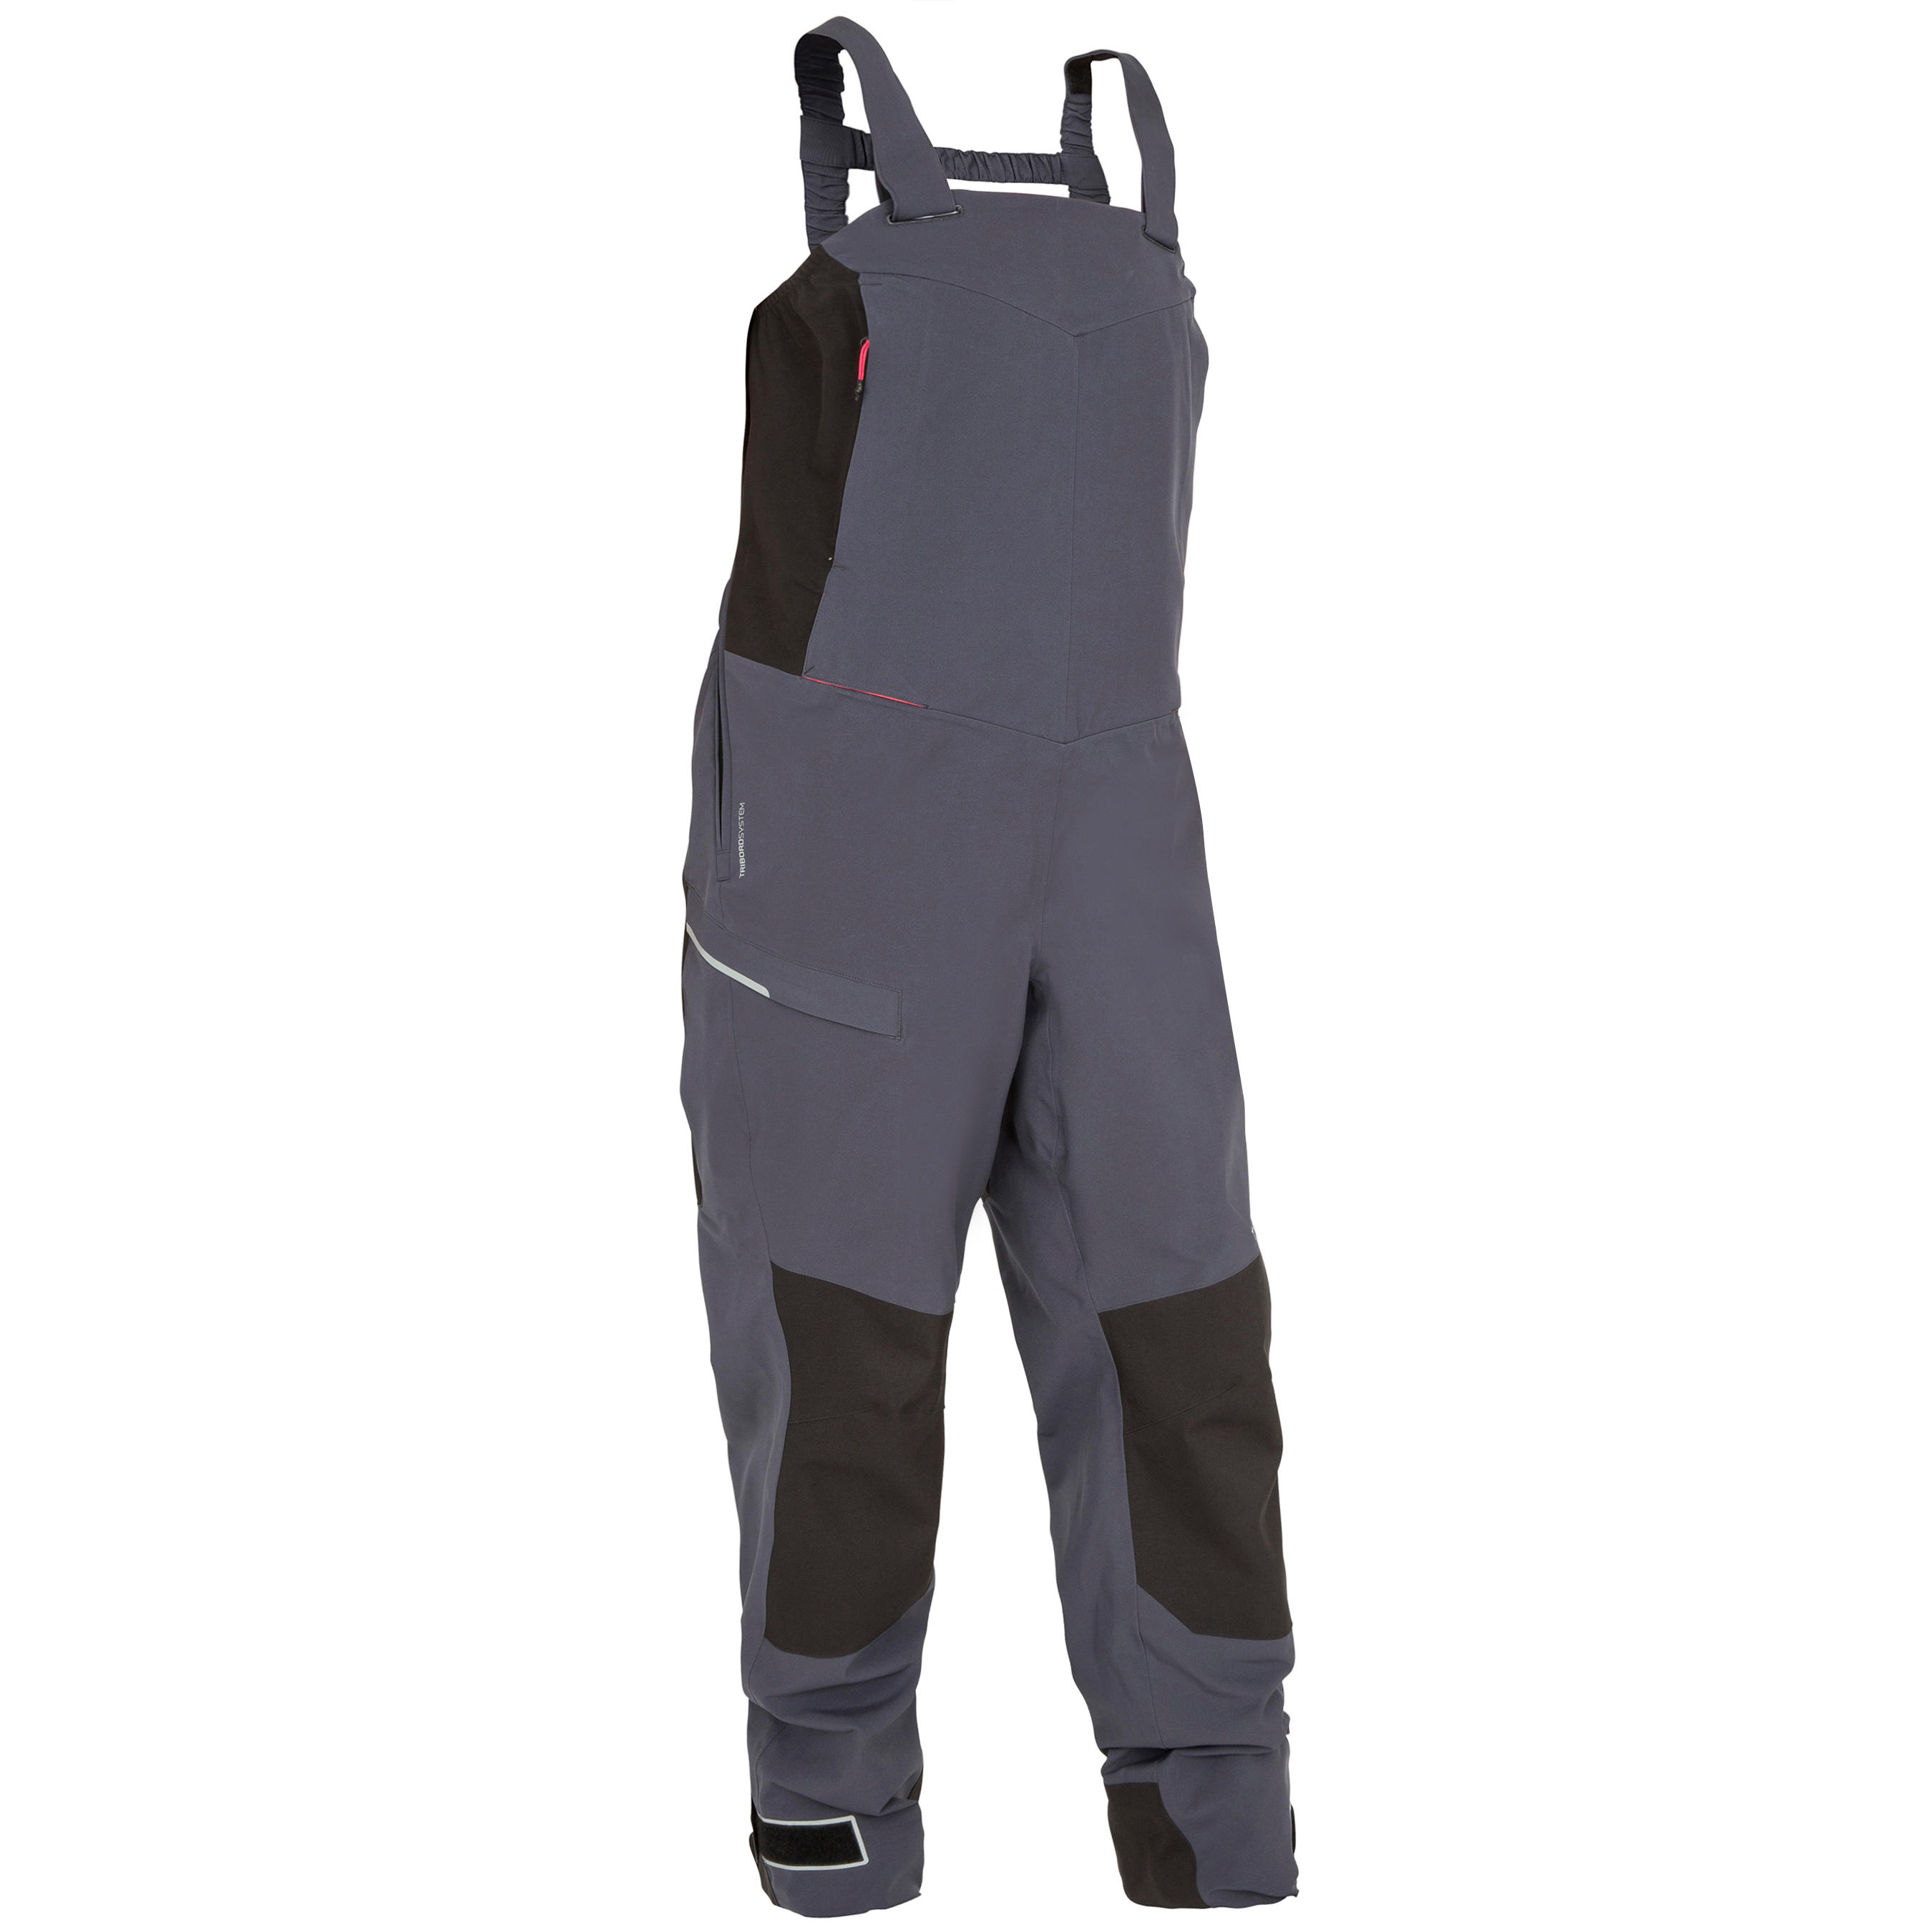 500 Women's Sailing Salopettes - Grey